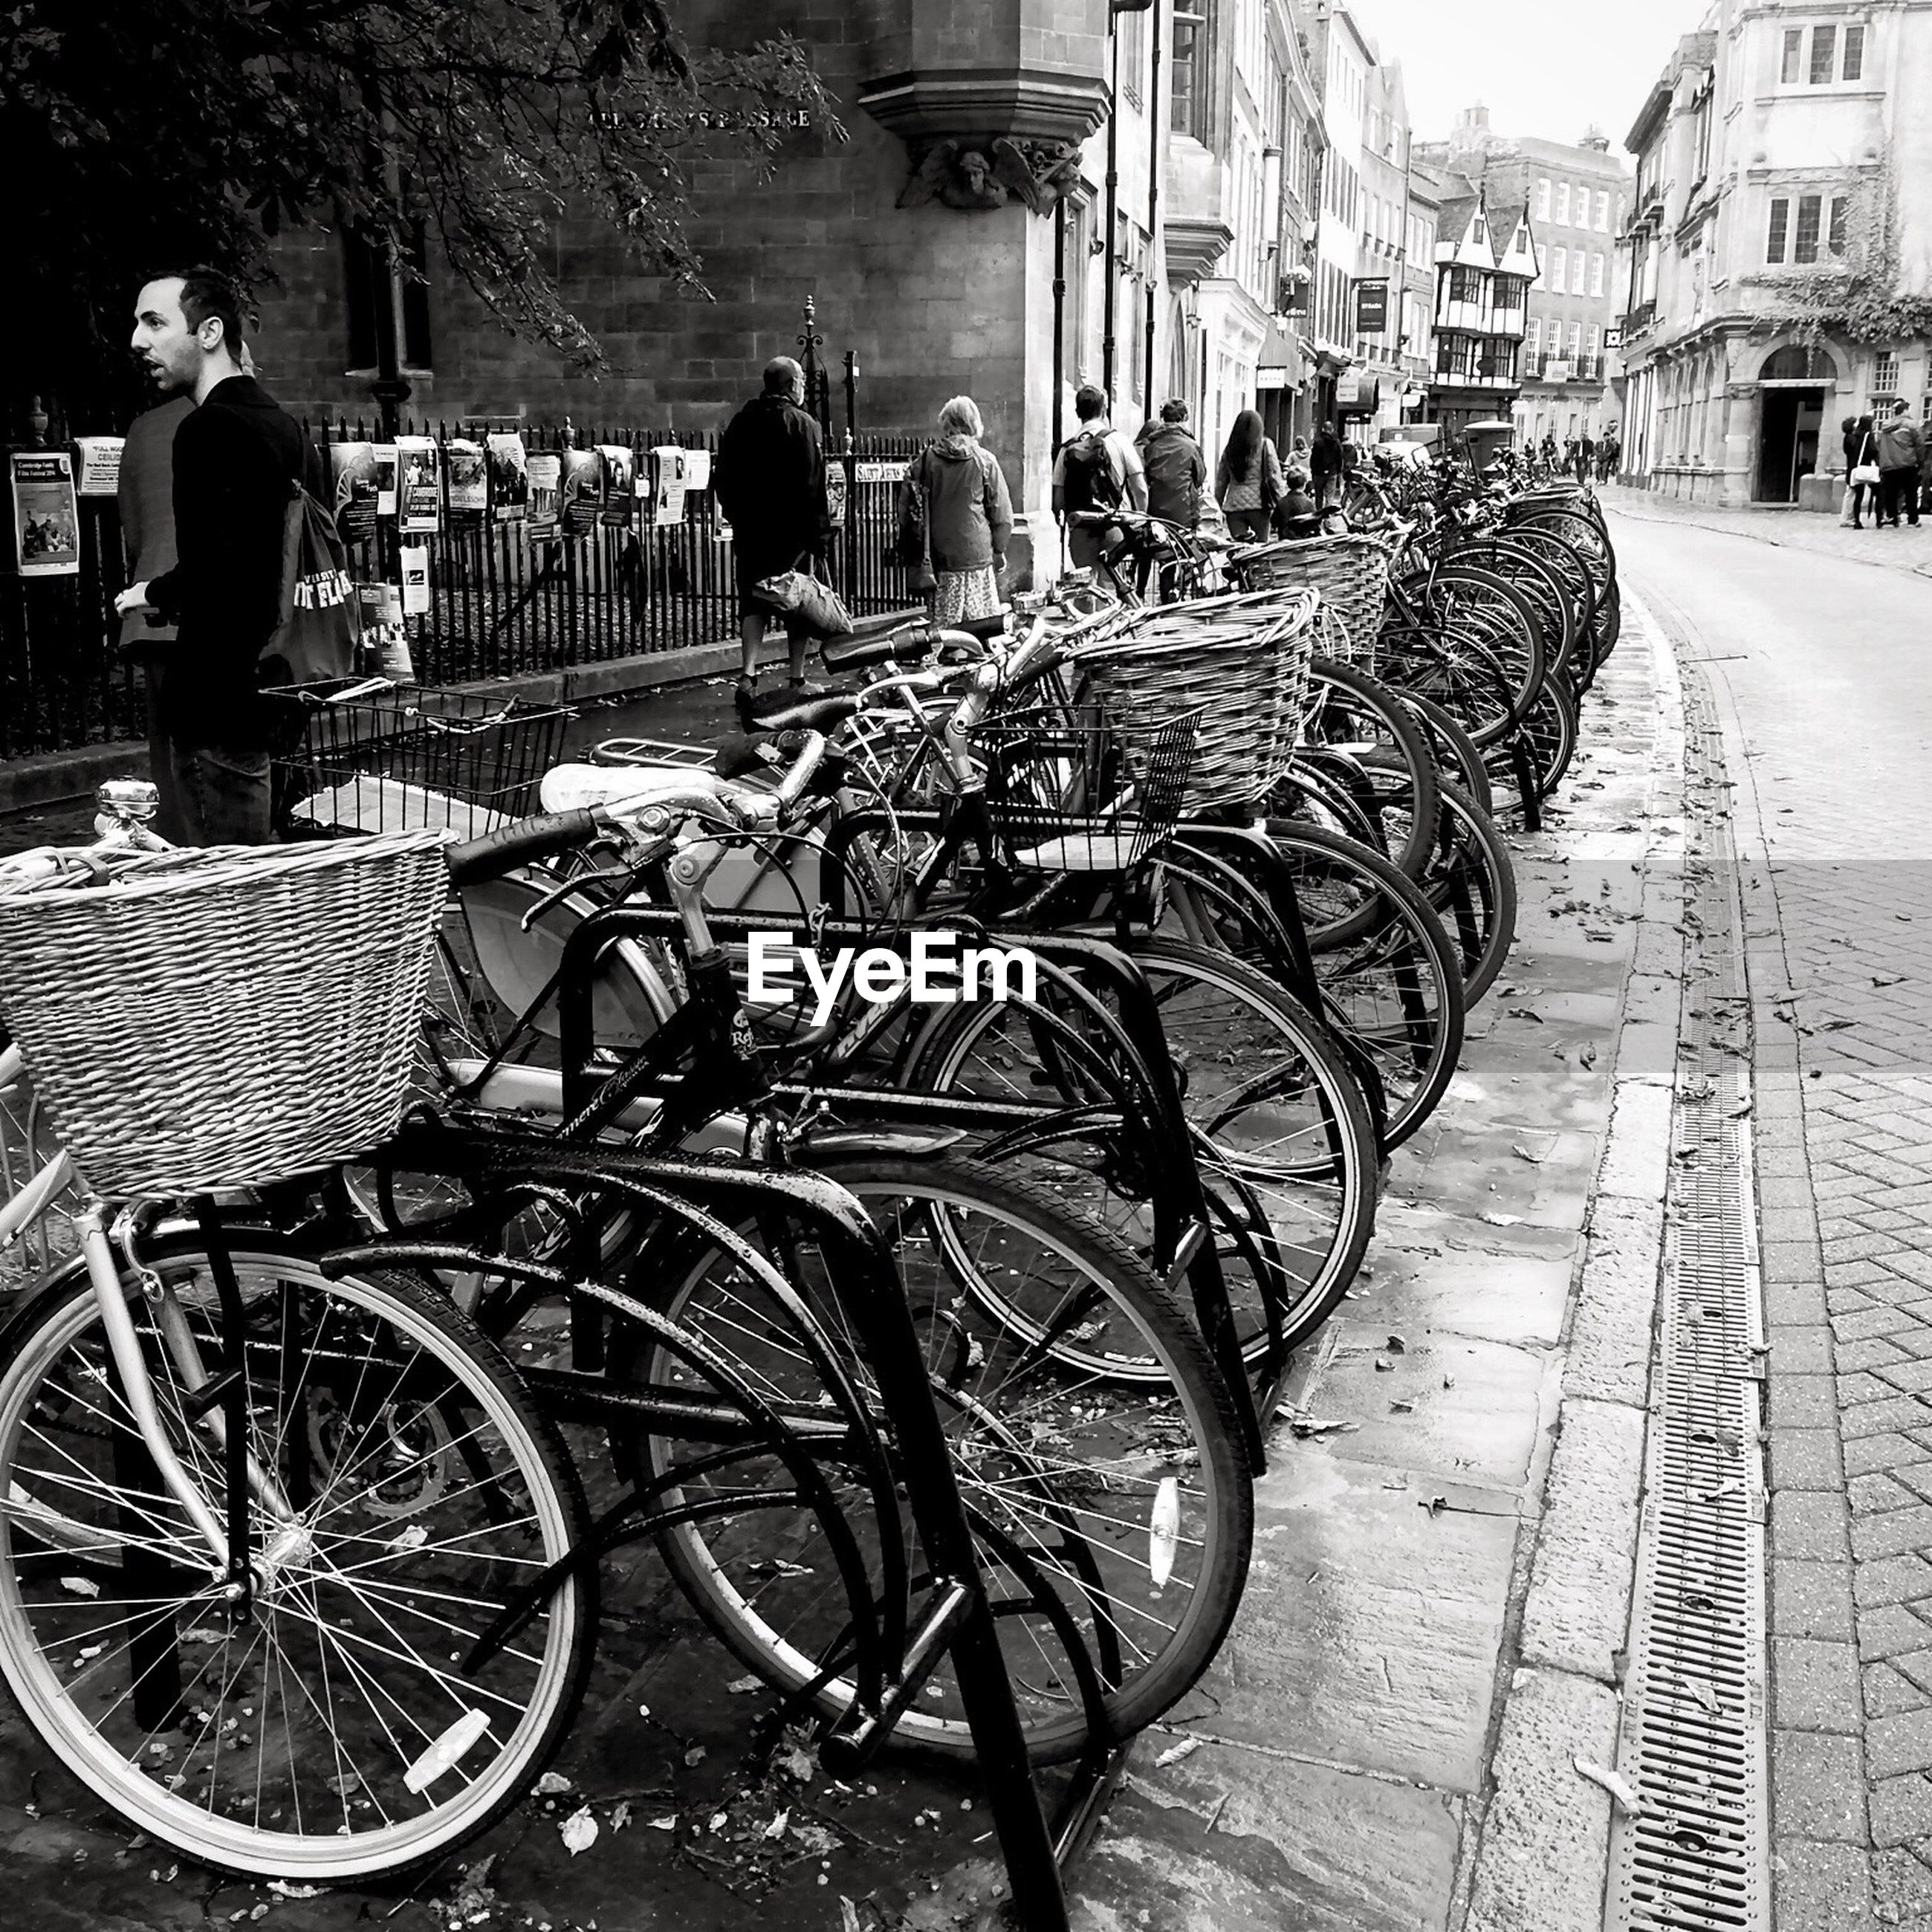 Bicycles parked by street in city